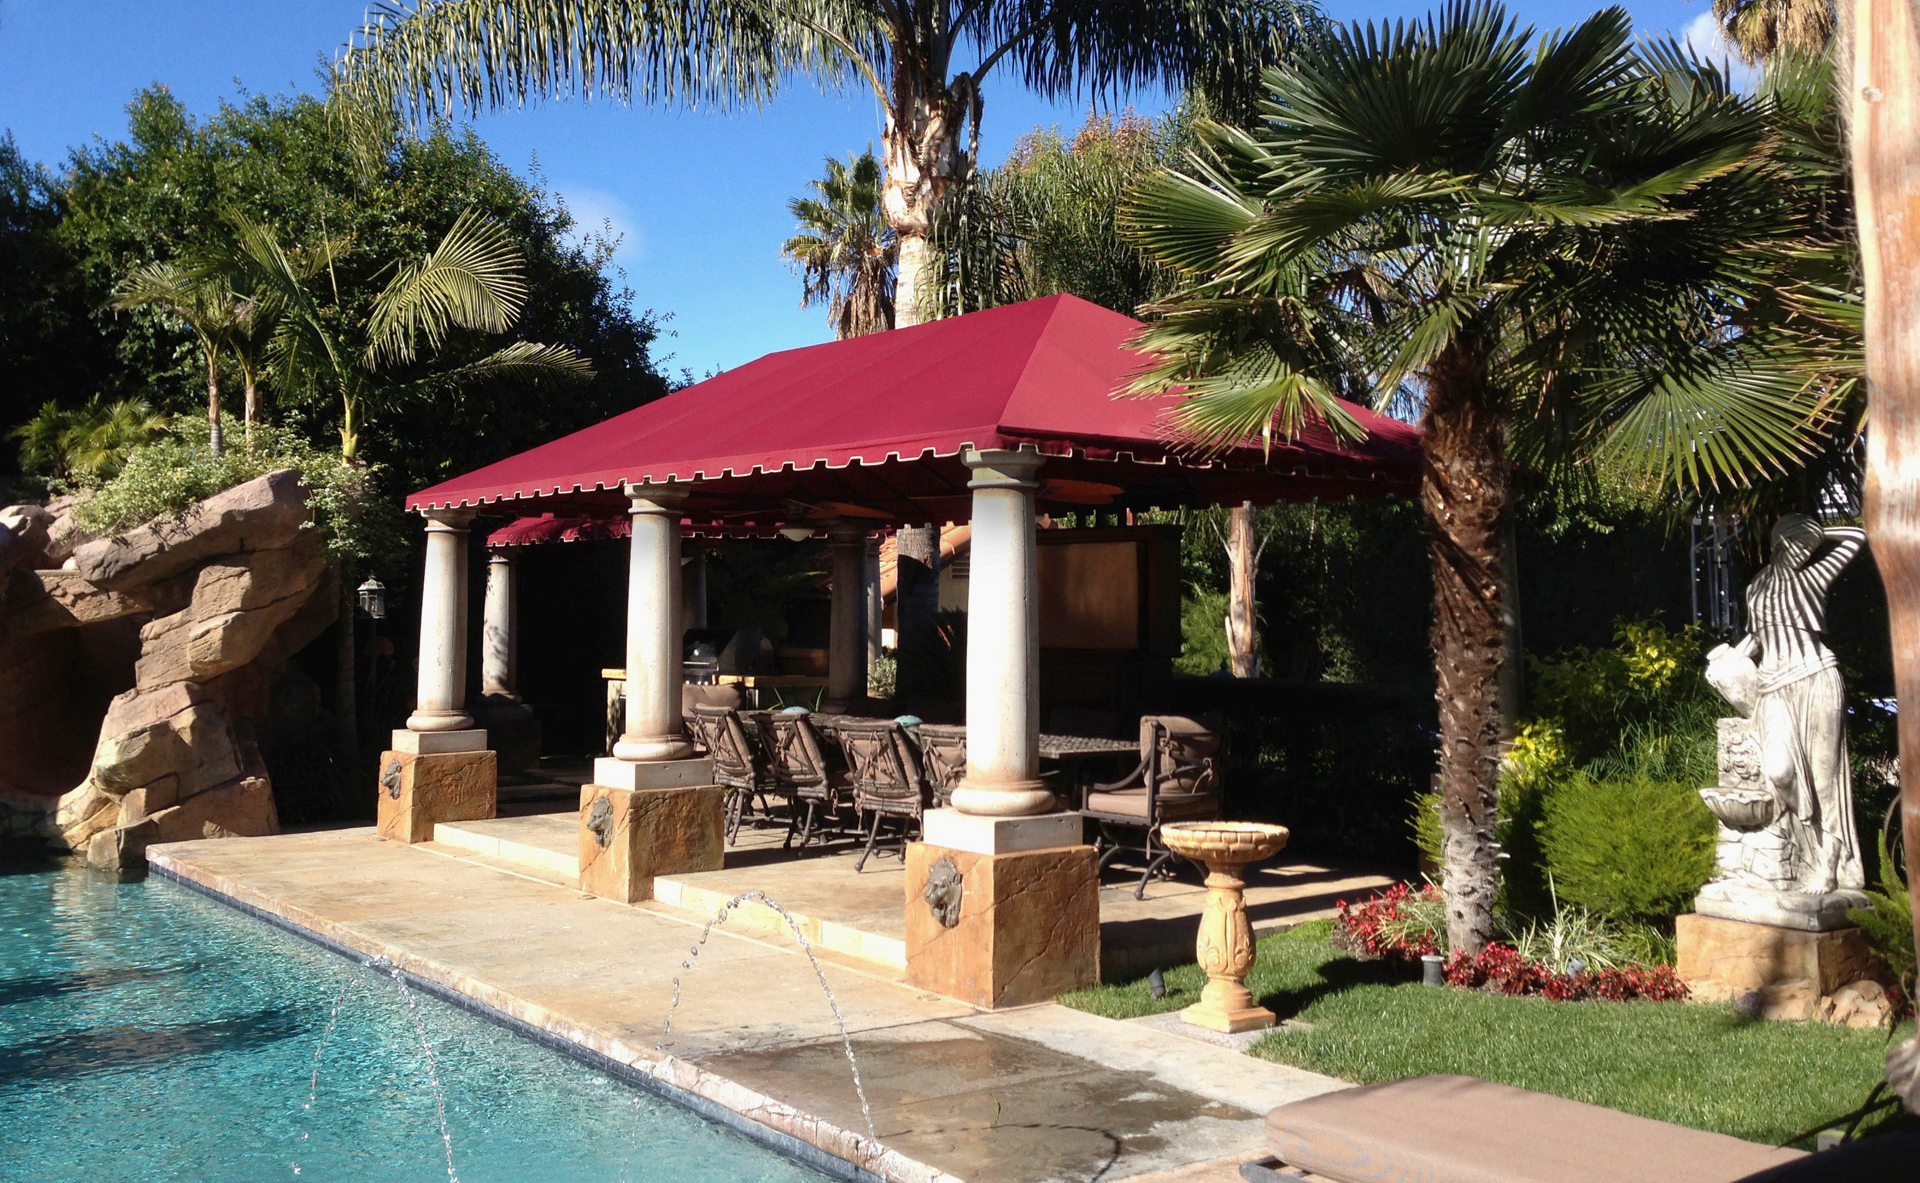 A poolside residential awning adds shade and comfort